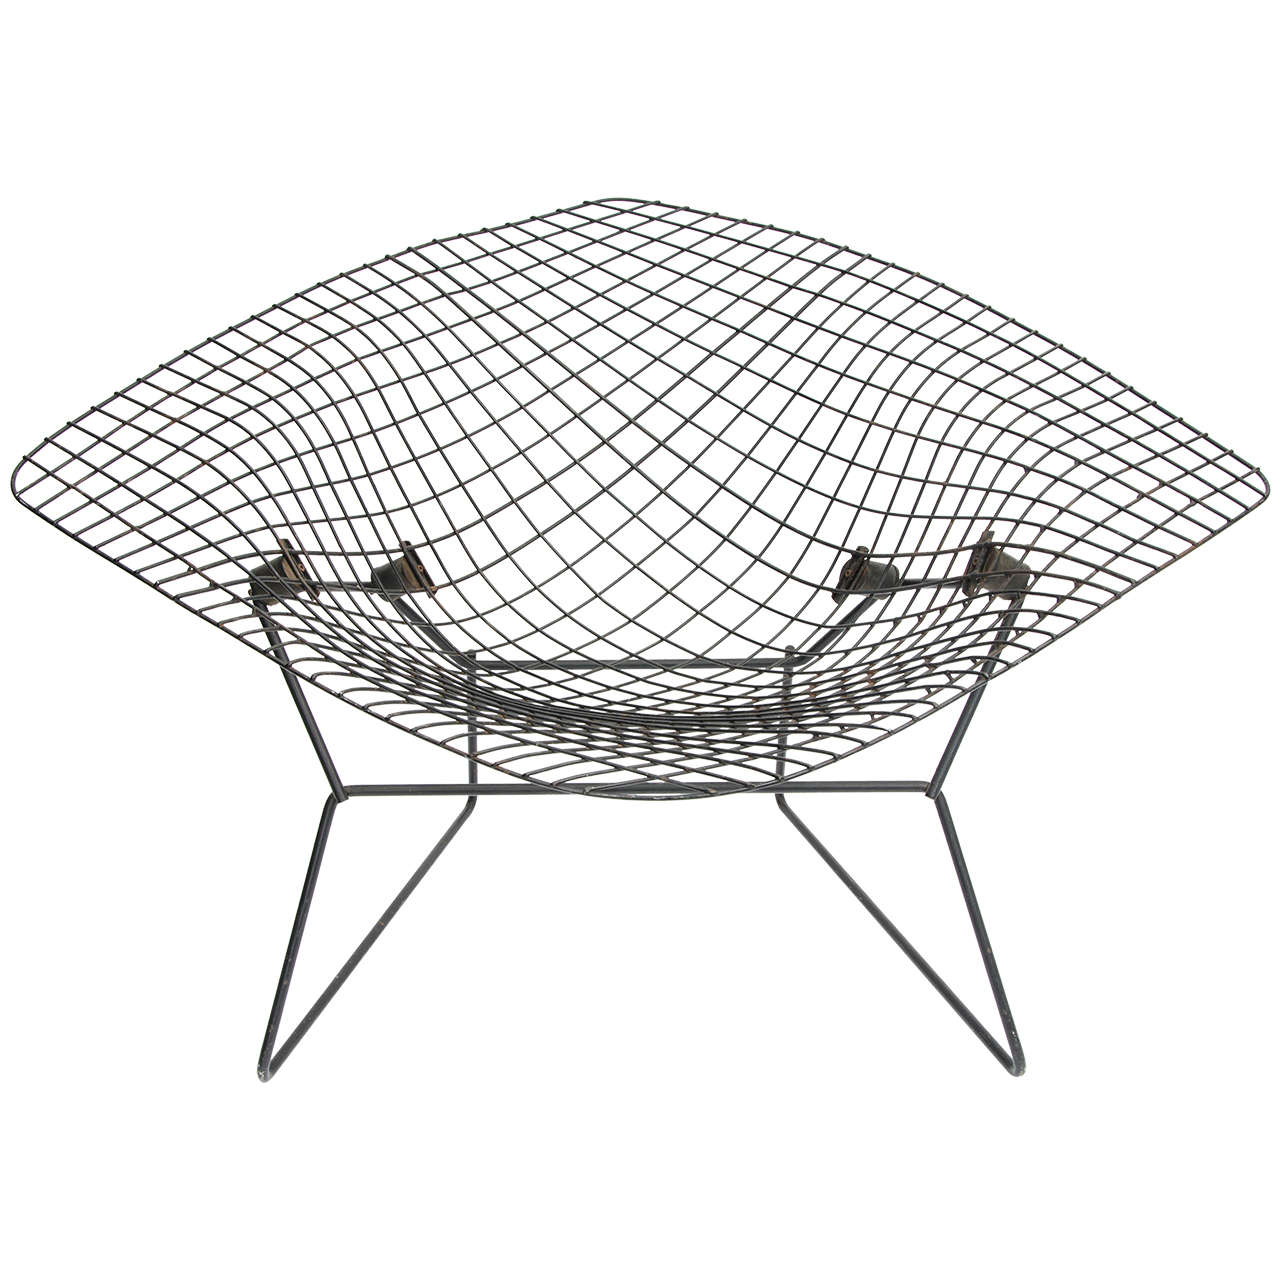 Bertoia diamond chair black - Early Wide Diamond Chair By Harry Bertoia 1950s 1